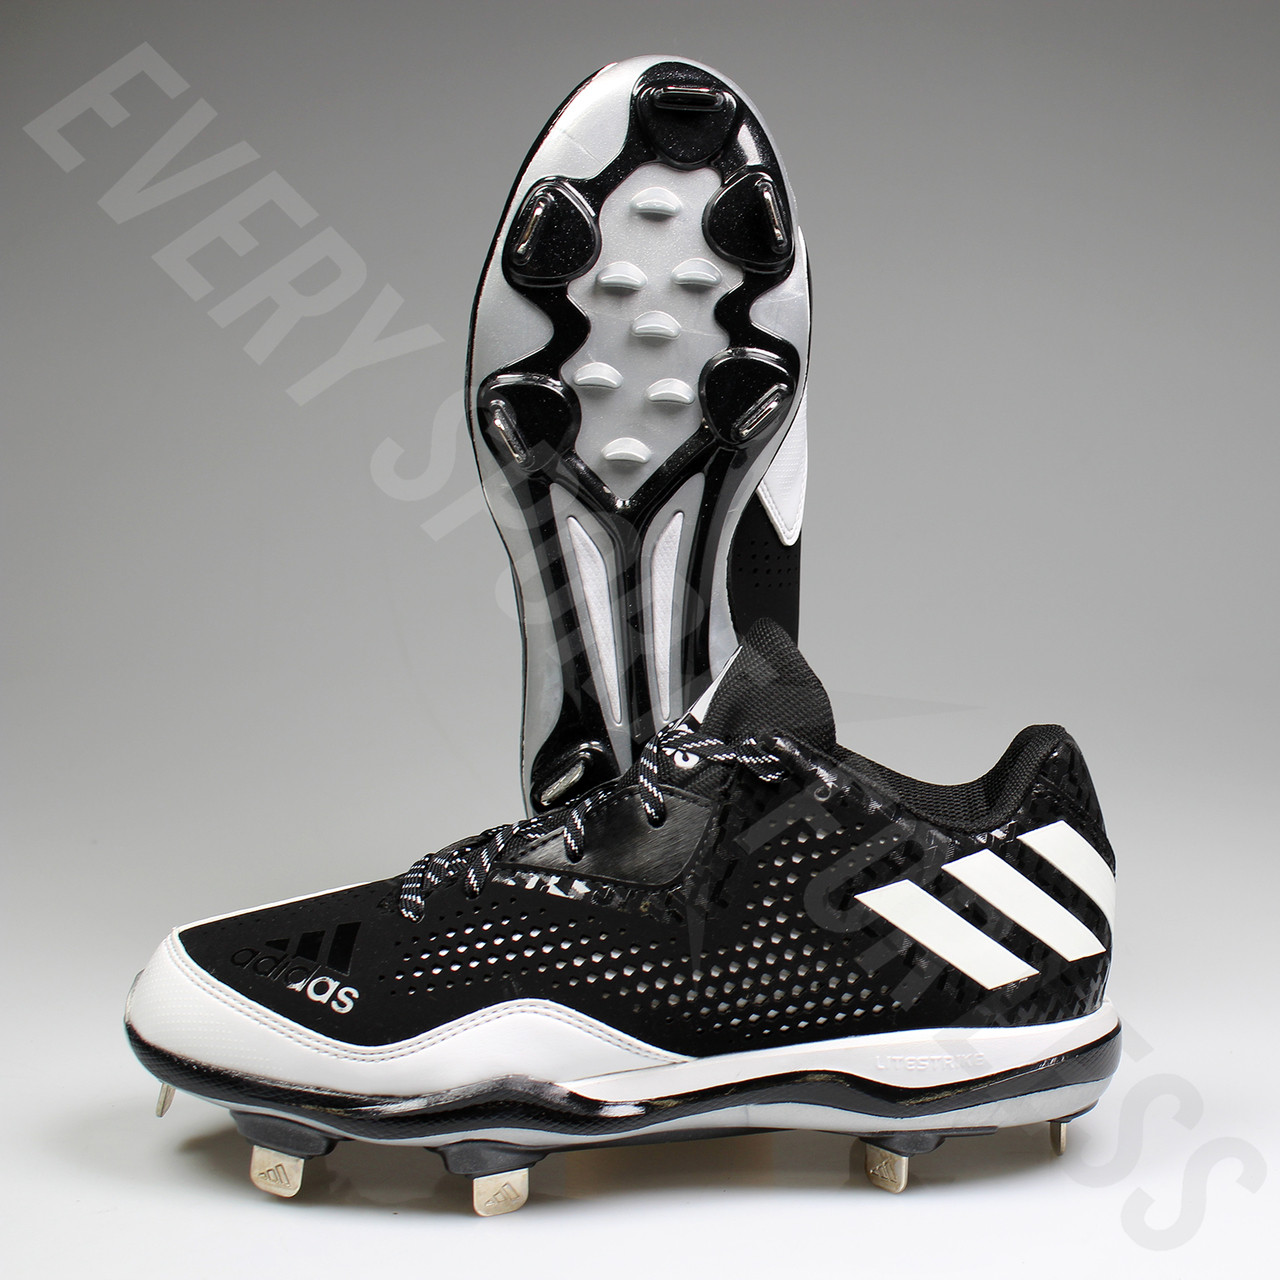 low priced 469e4 9018c ... White · Adidas Power Alley 4 Low Men s Metal Baseball Cleats Q16481 -  Black, ...